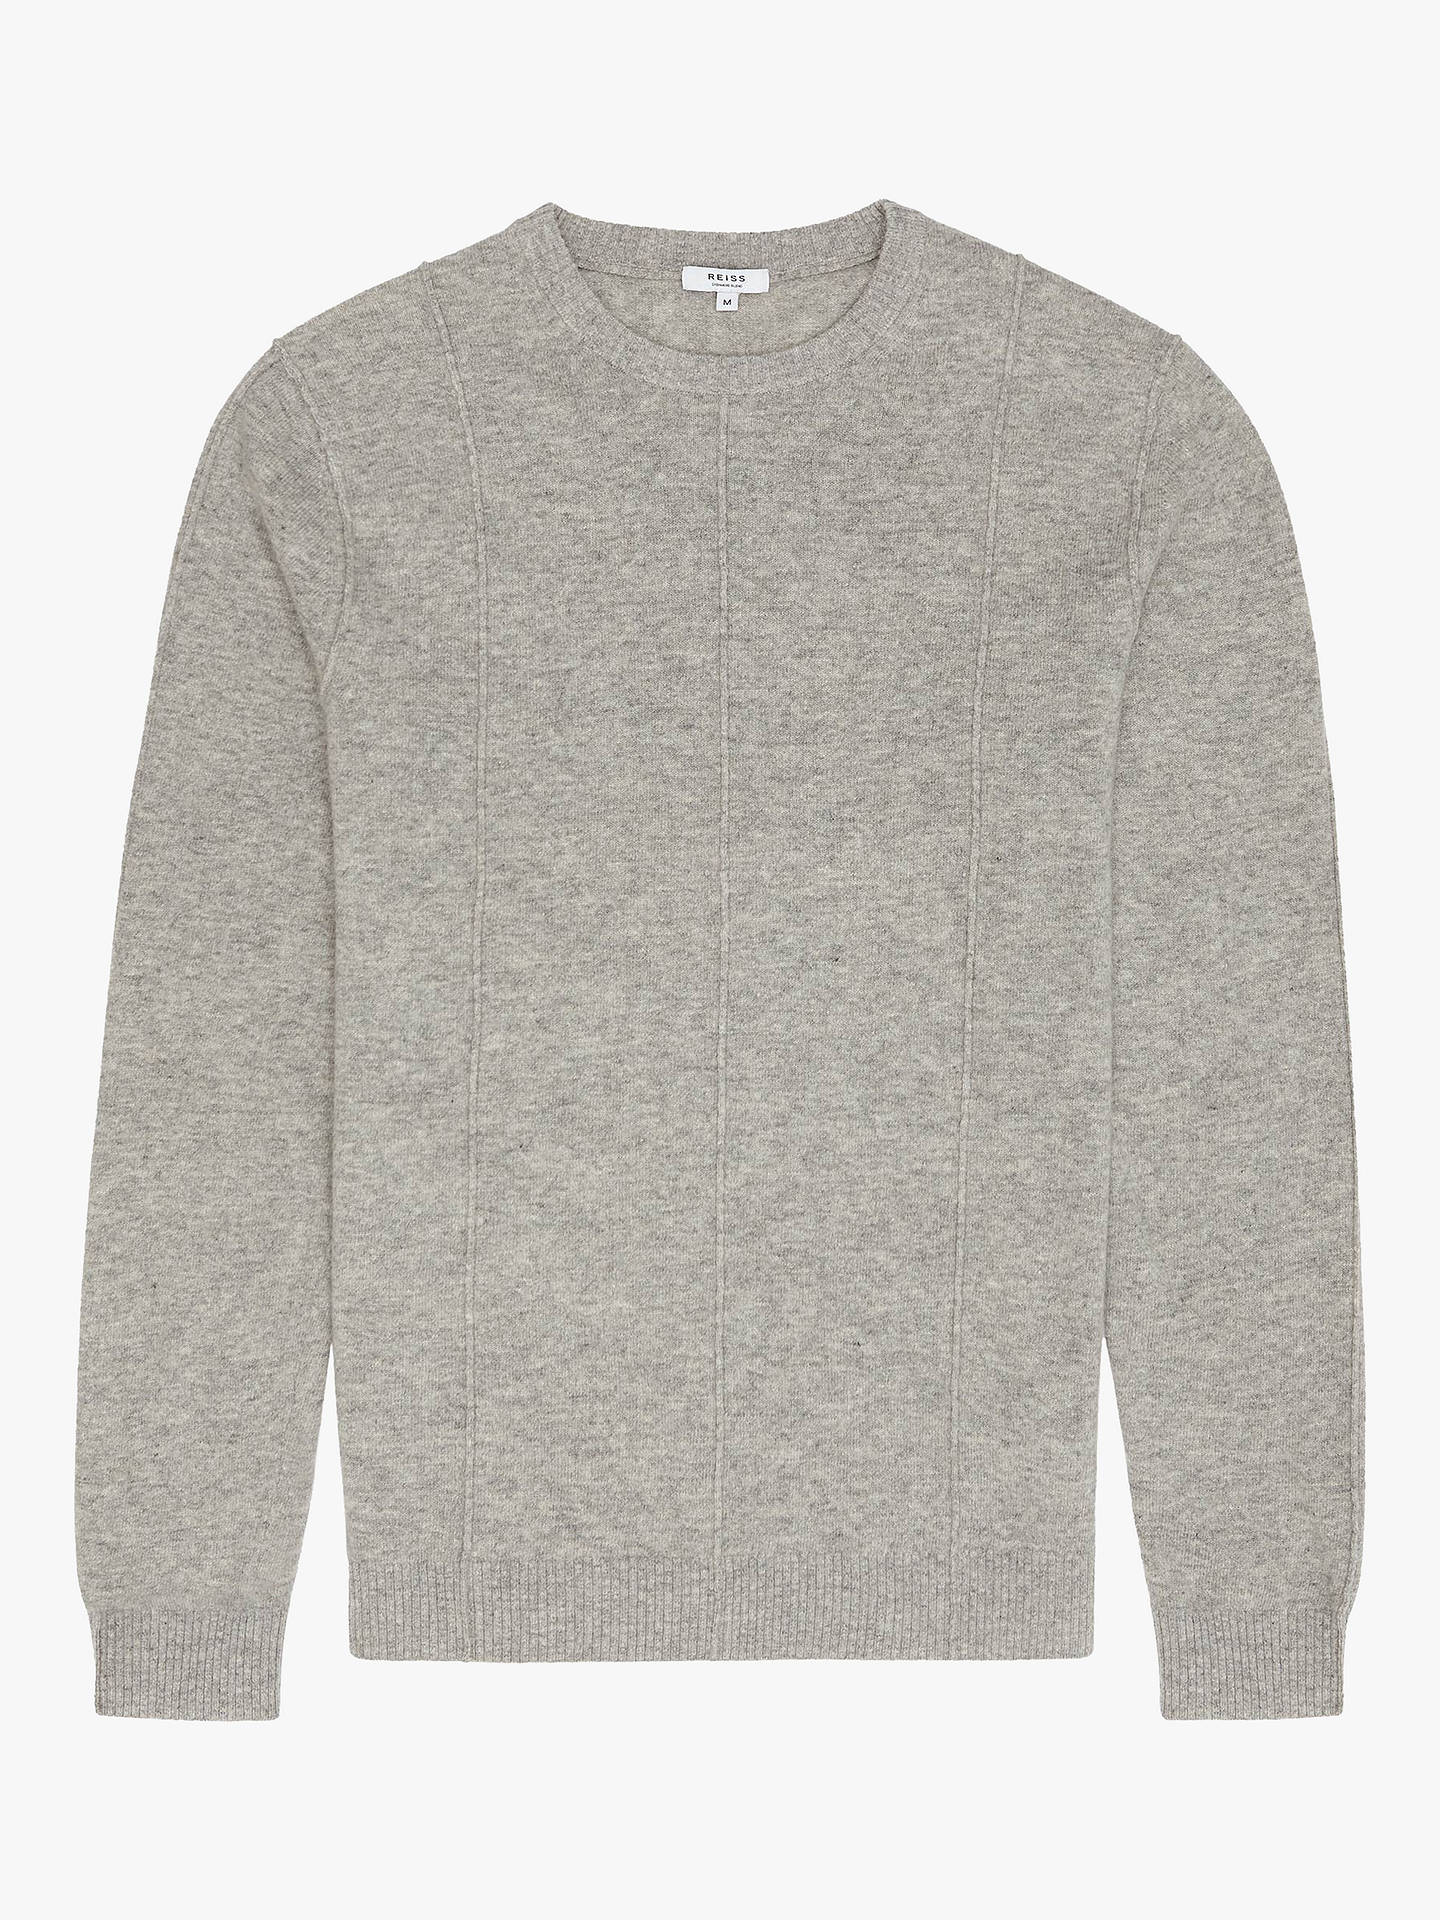 a750c5fc638 ... Buy Reiss Champion Wool Cashmere Jumper, Grey, S Online at johnlewis.com